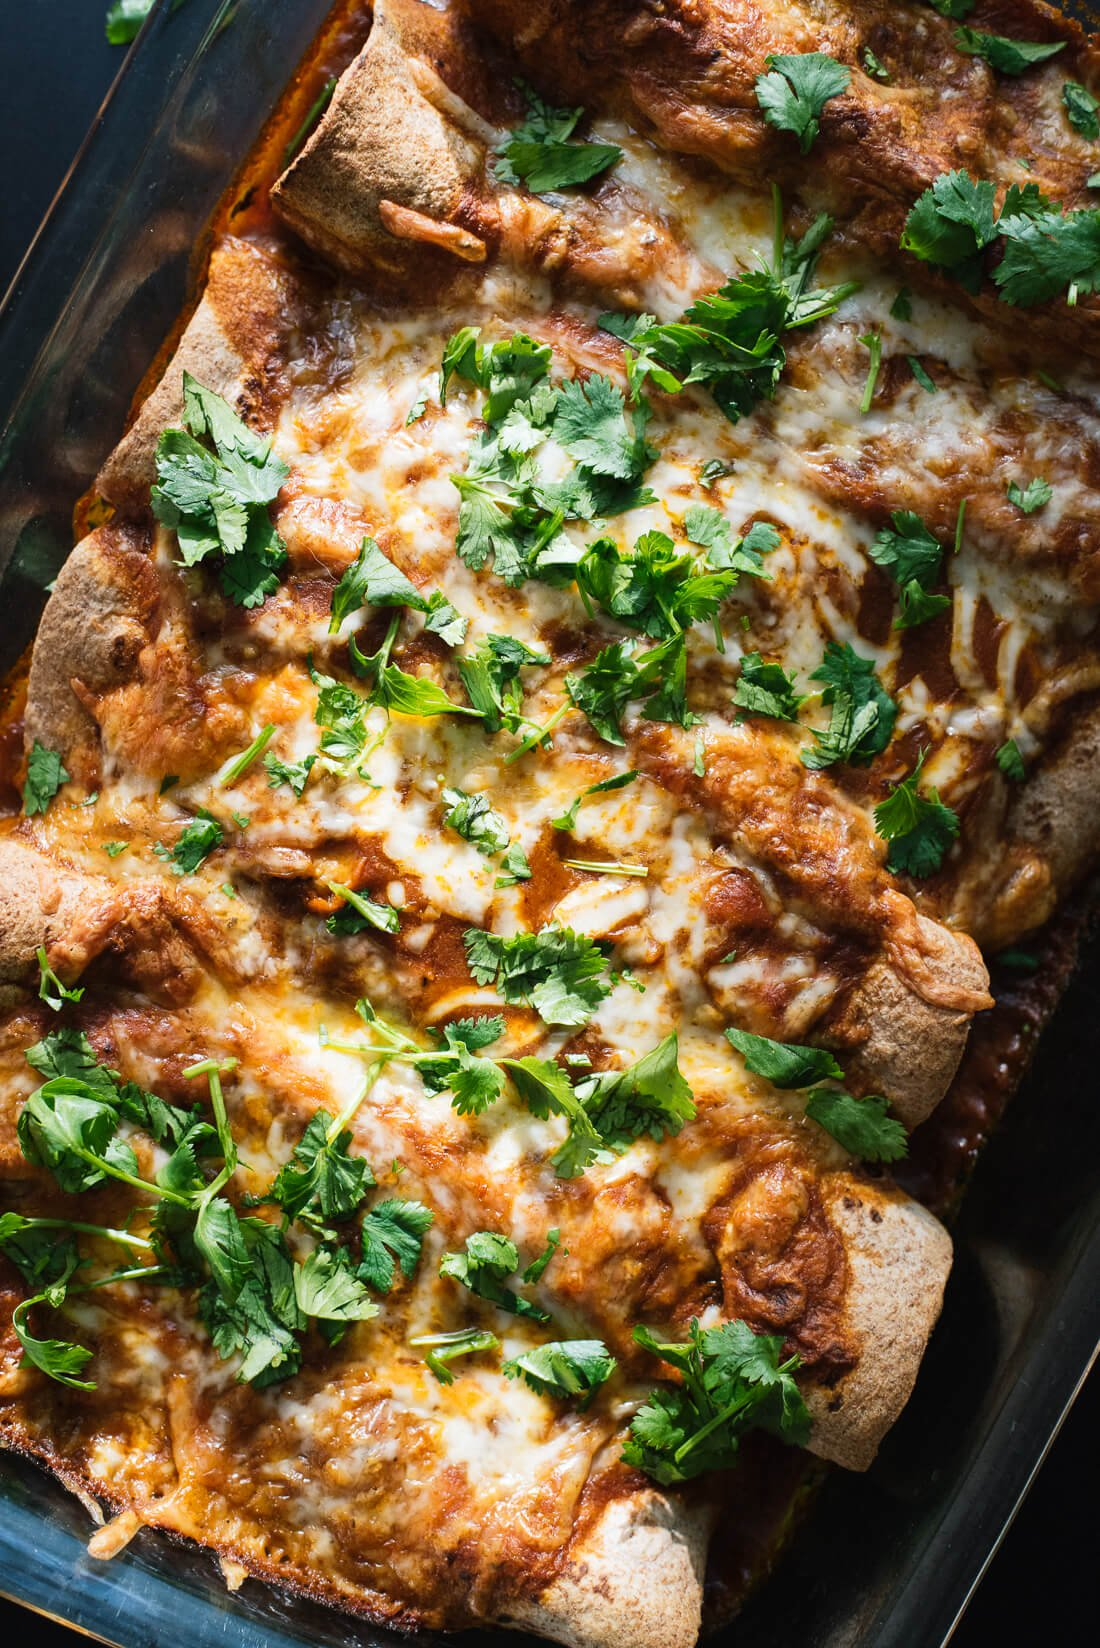 Vegetarian spinach, artichoke and black bean enchiladas with a simple homemade red sauce